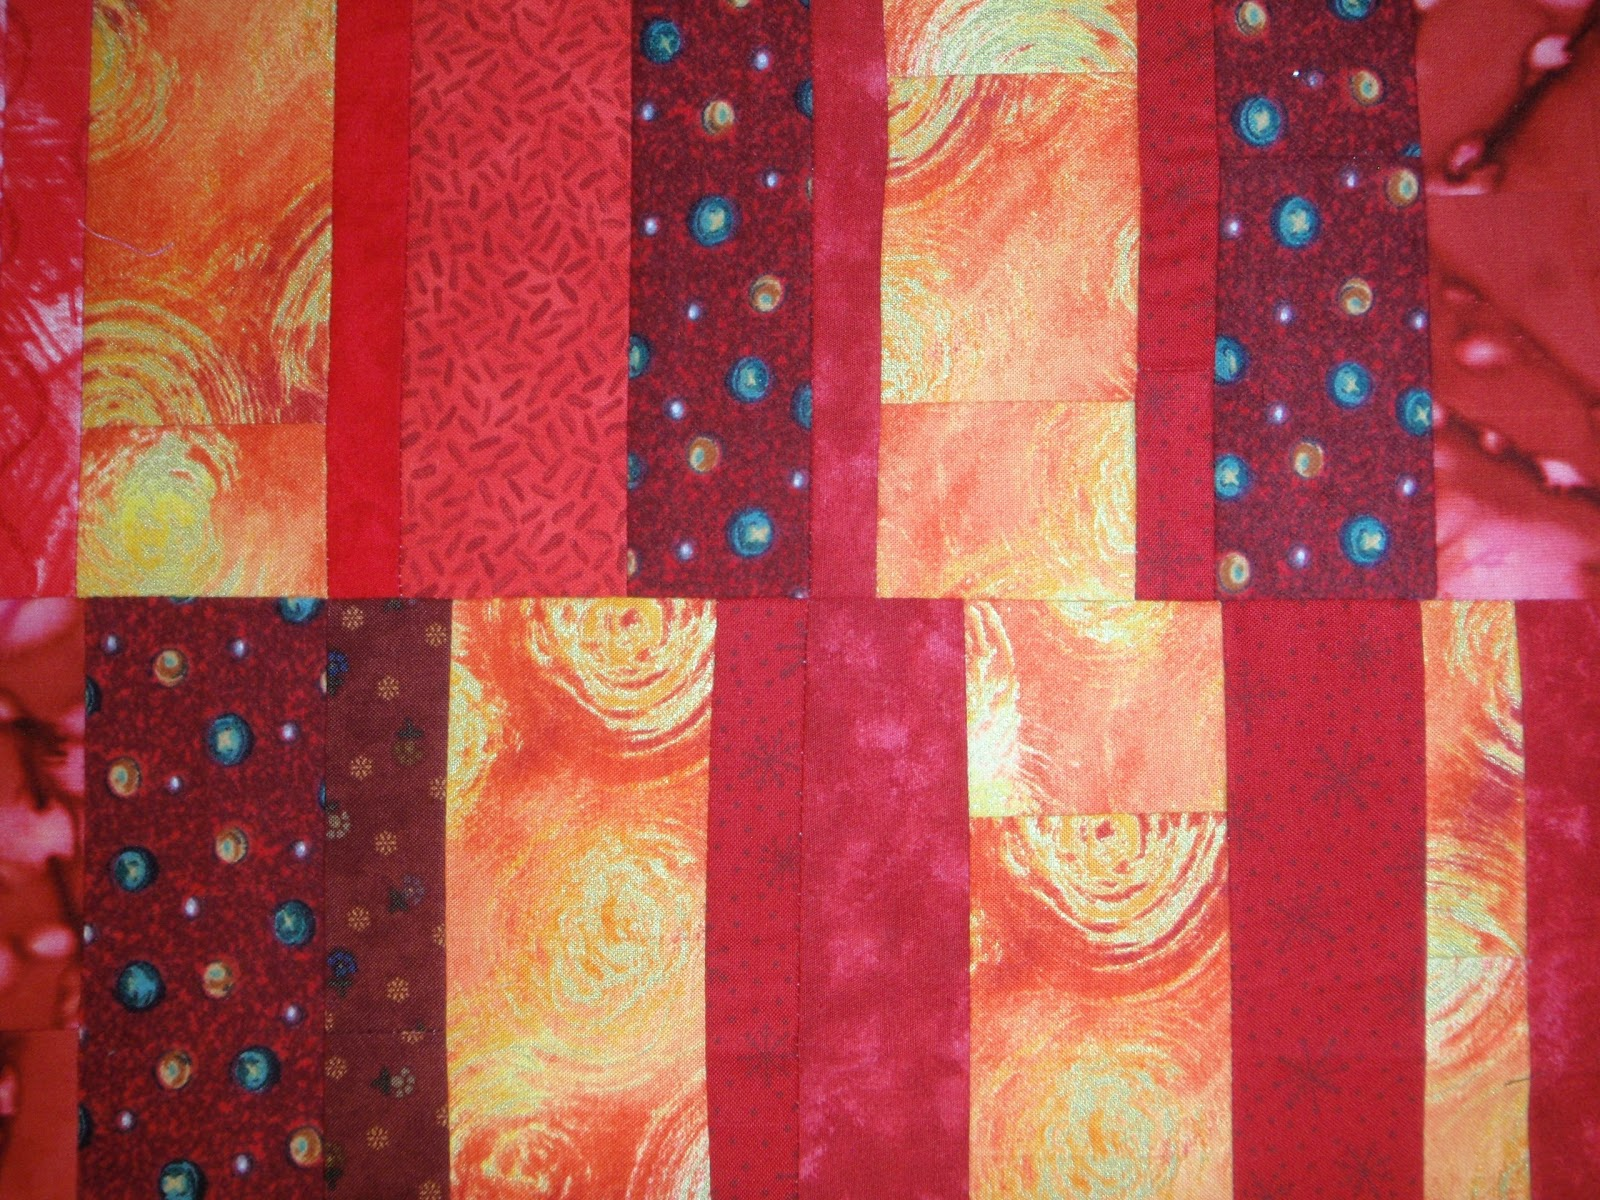 Quilters enjoy color warm and cool color demo for for Cool colors together